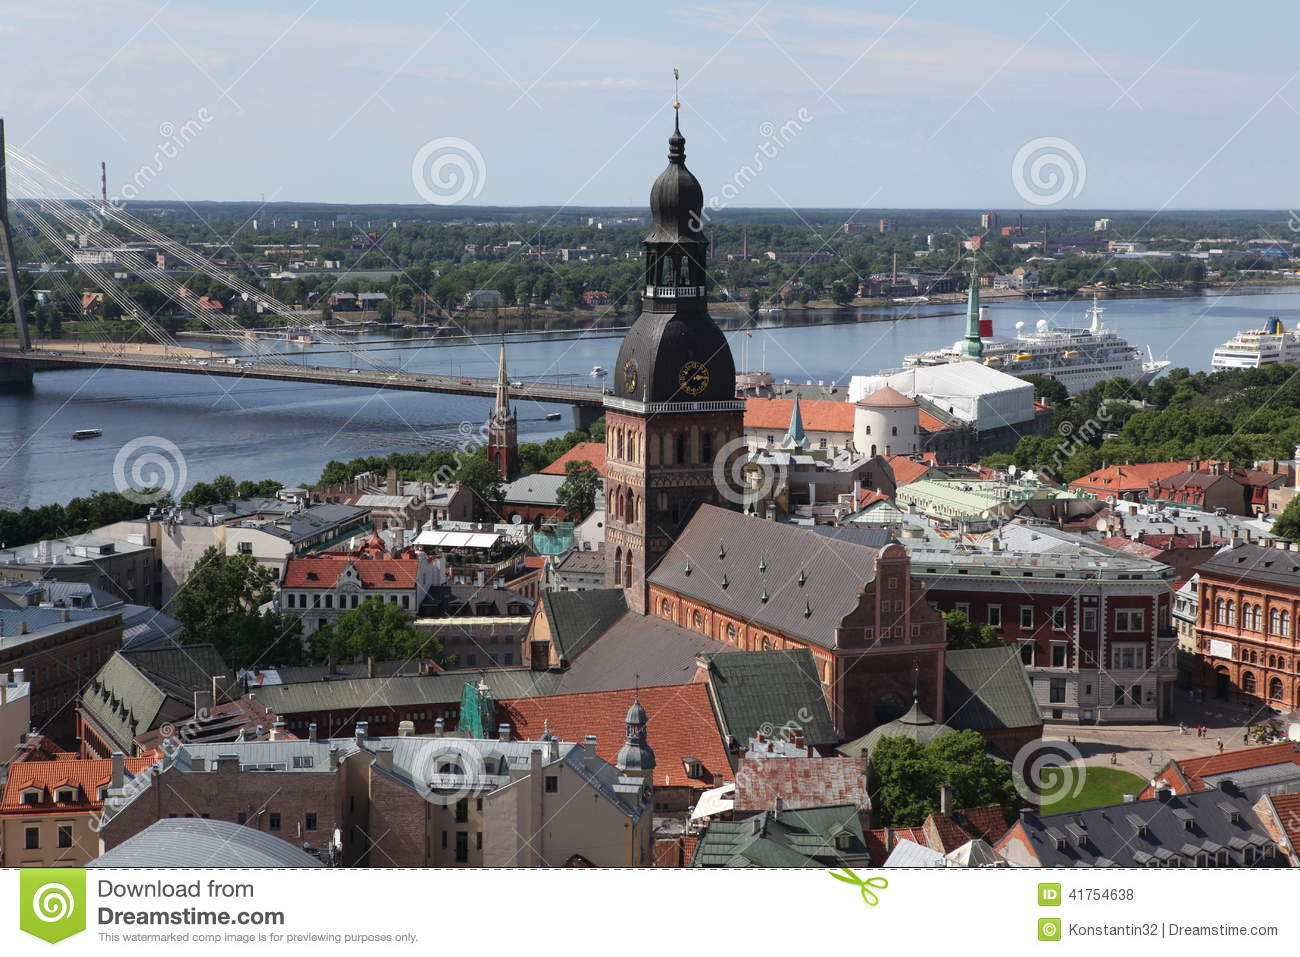 The general view of Riga, Latvia